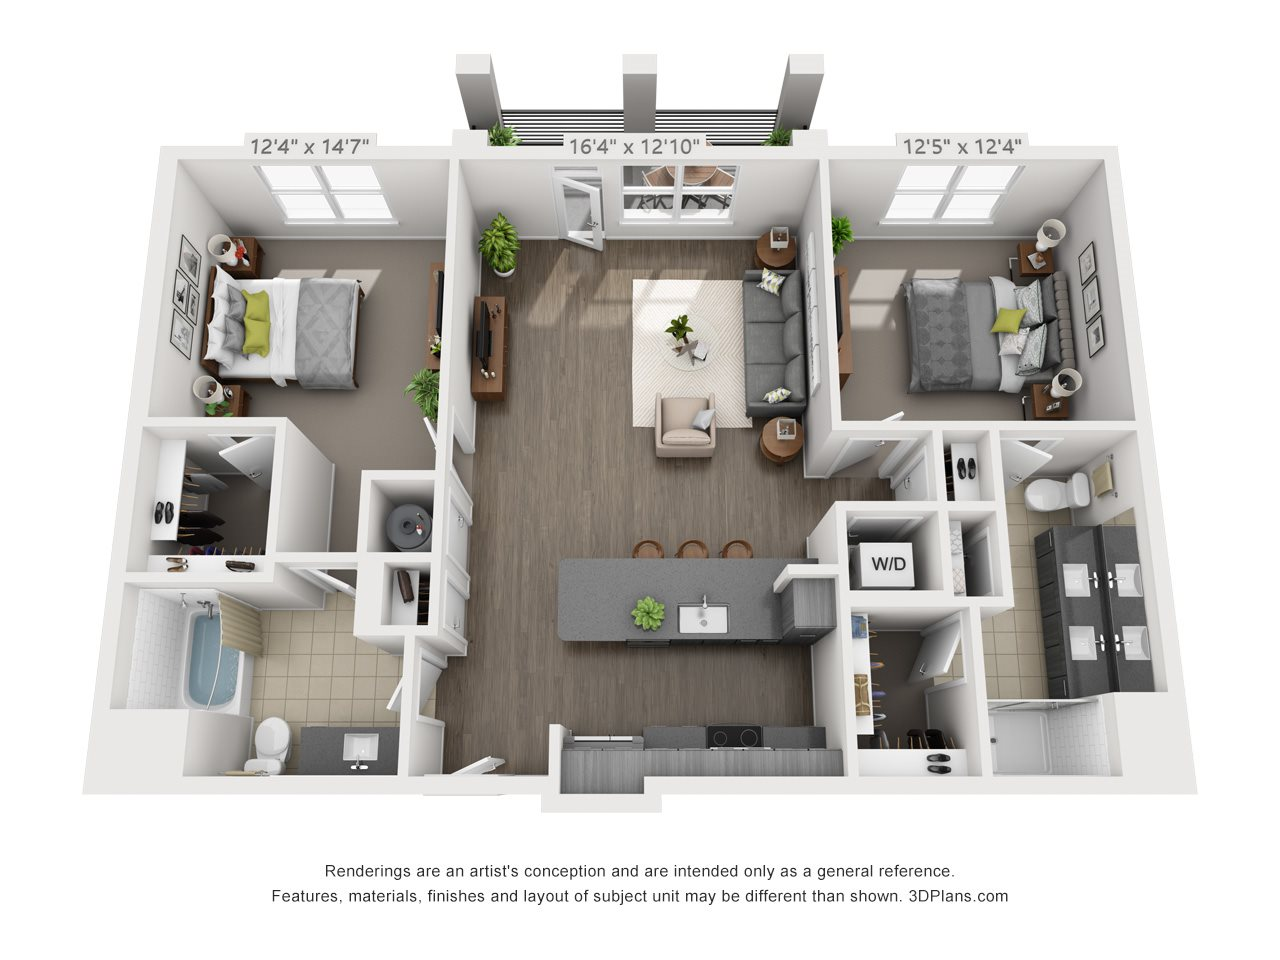 B4 2 BEDROOM/2 BATH Floor Plan 17